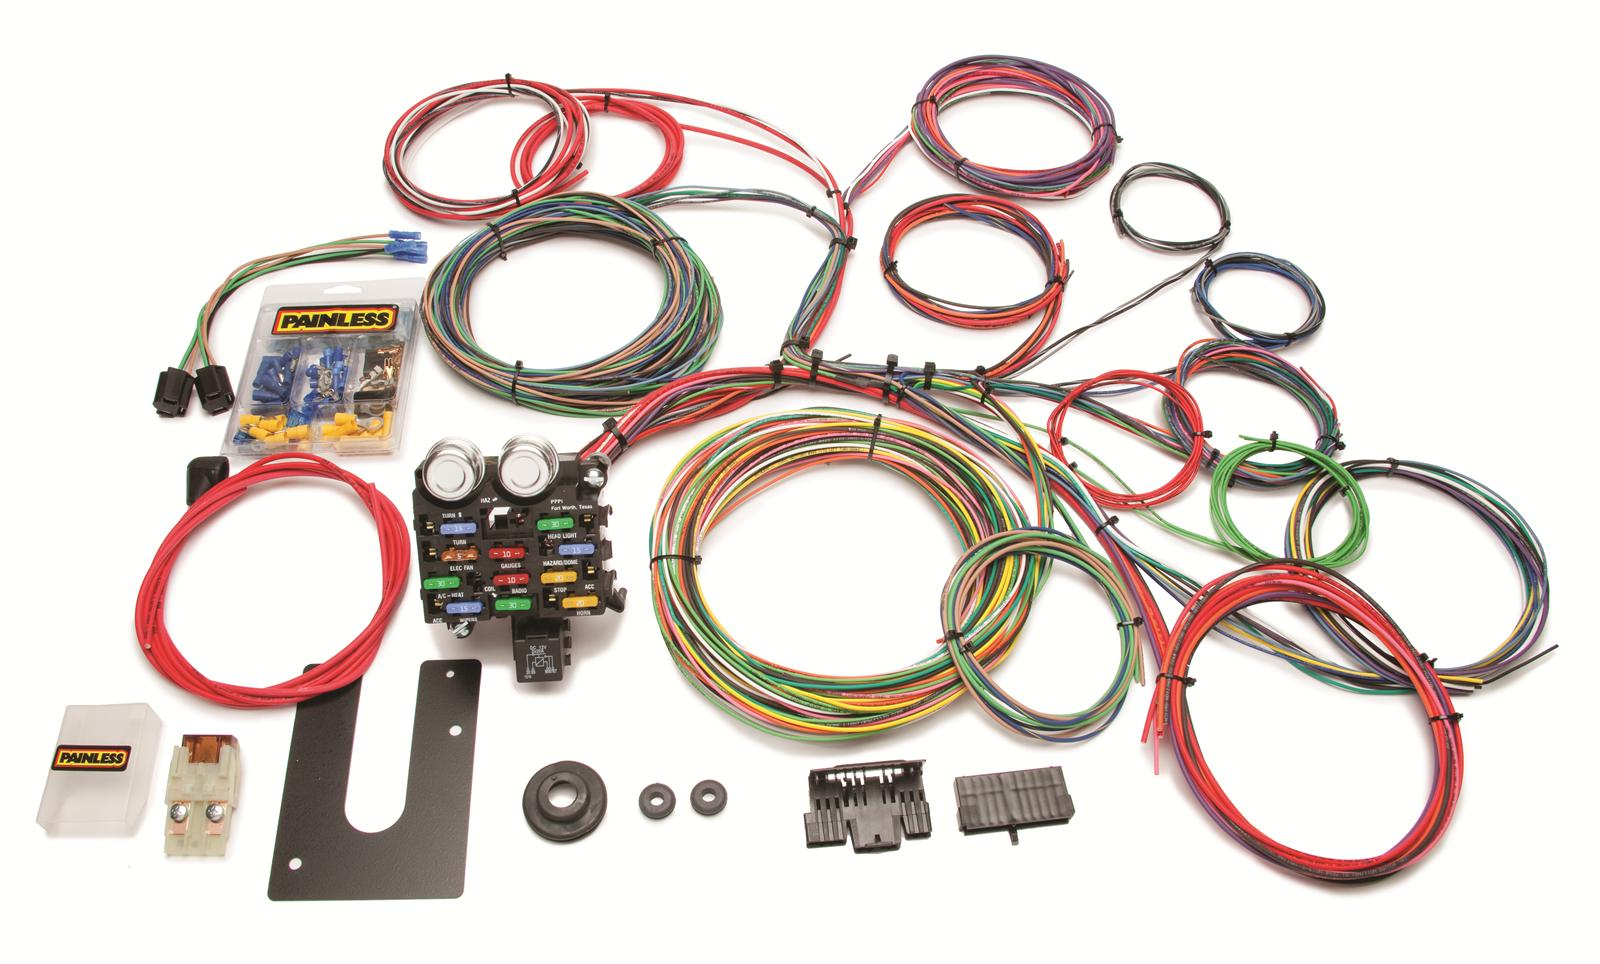 painless performance 21 circuit universal harnesses 10102 free rh summitracing com Easy Wiring Harness 22 Circuit Wiring Harness